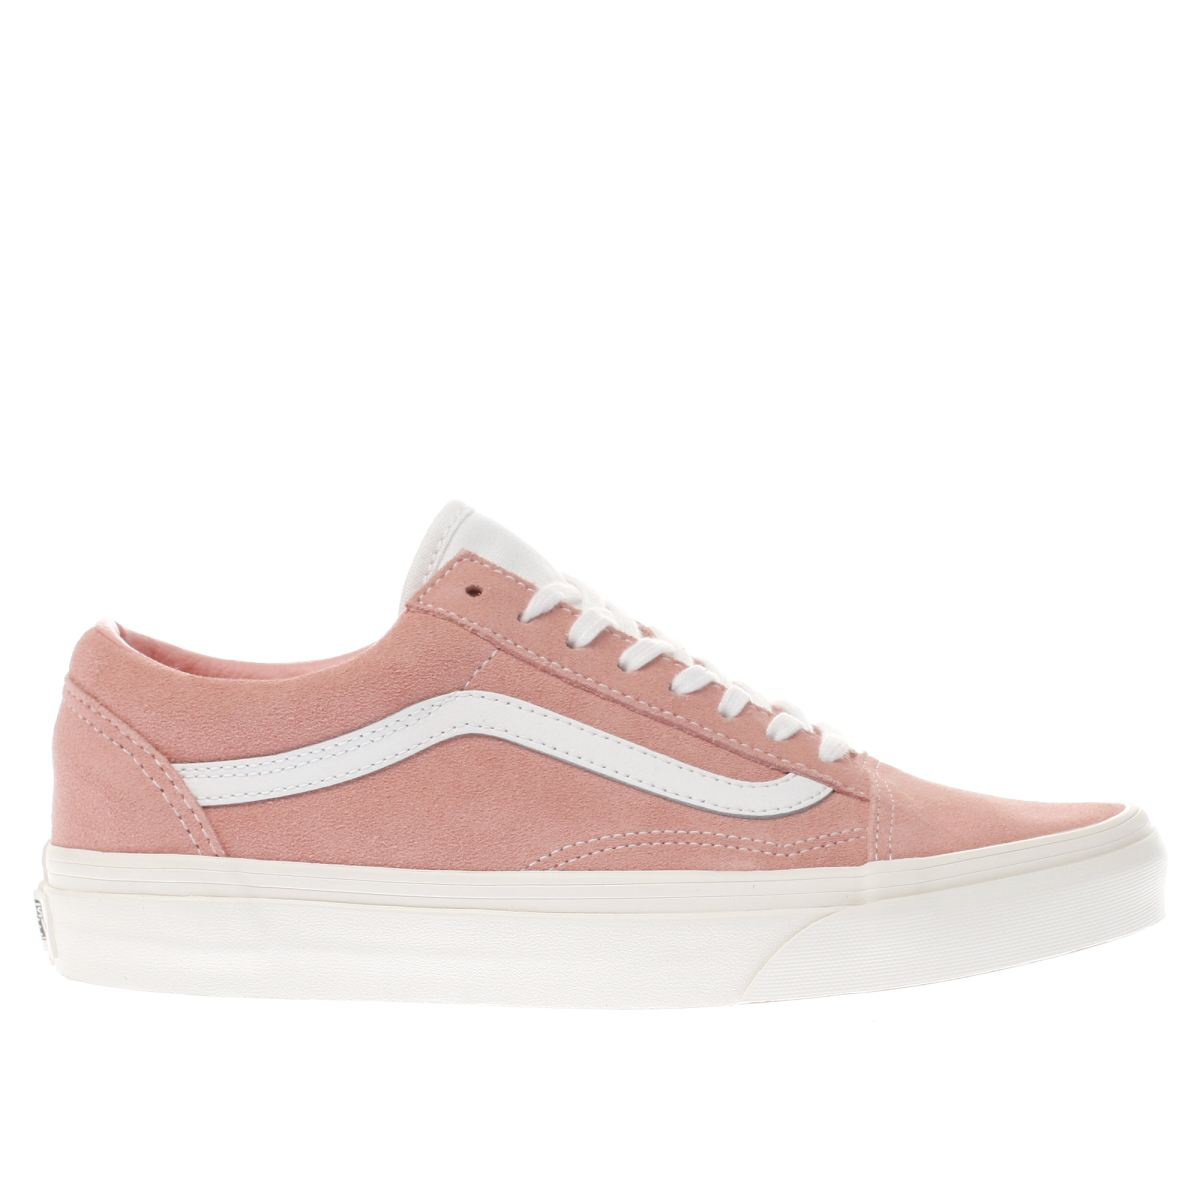 vans-old-skool-retro-sport-pale-pink-trainers